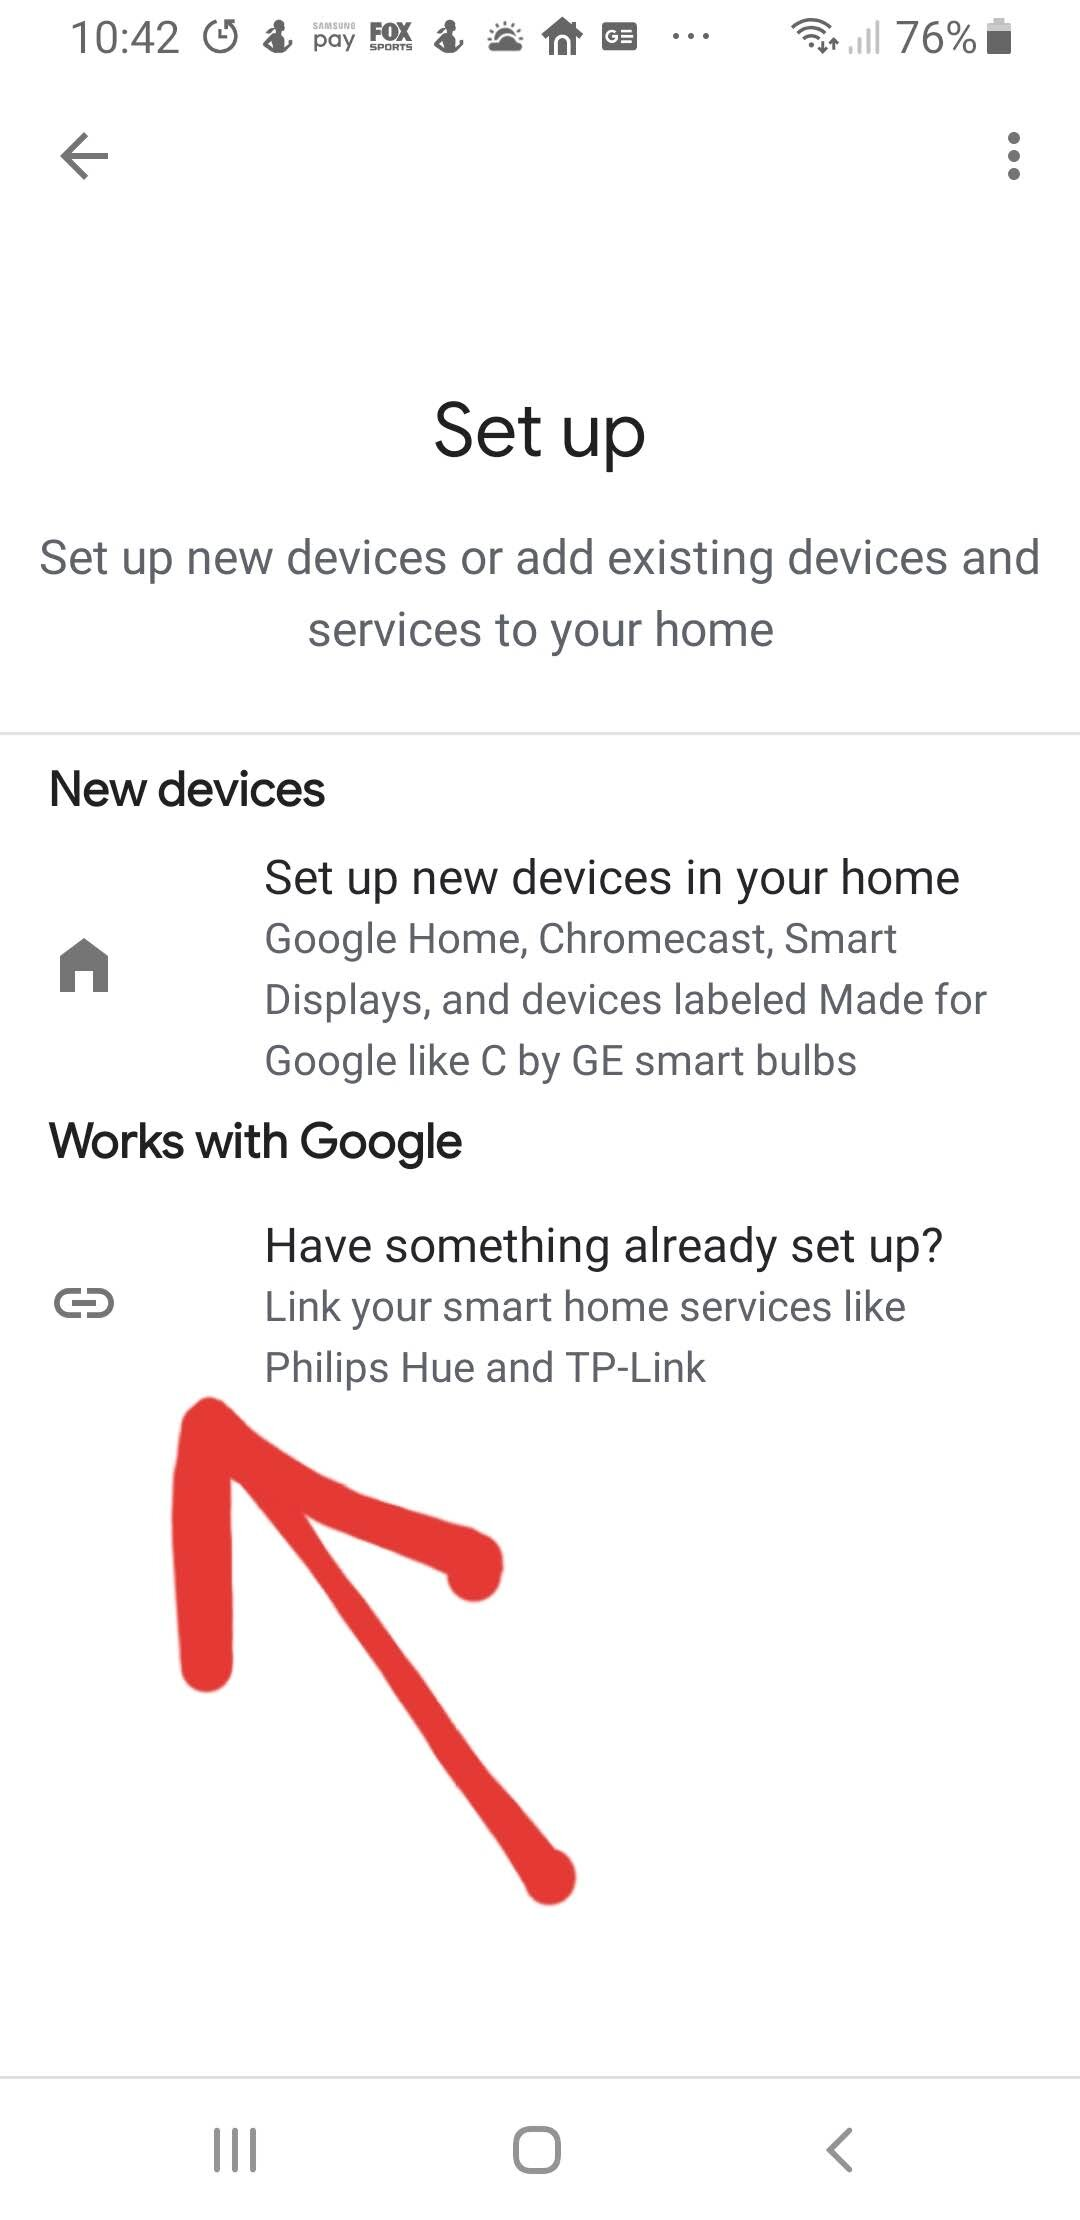 Works with Google is the option that should be used for setting up all devices that work with Google but aren't made by Google. Such as smart light switches, smart plugs and smart light bulbs that work with Google Home.